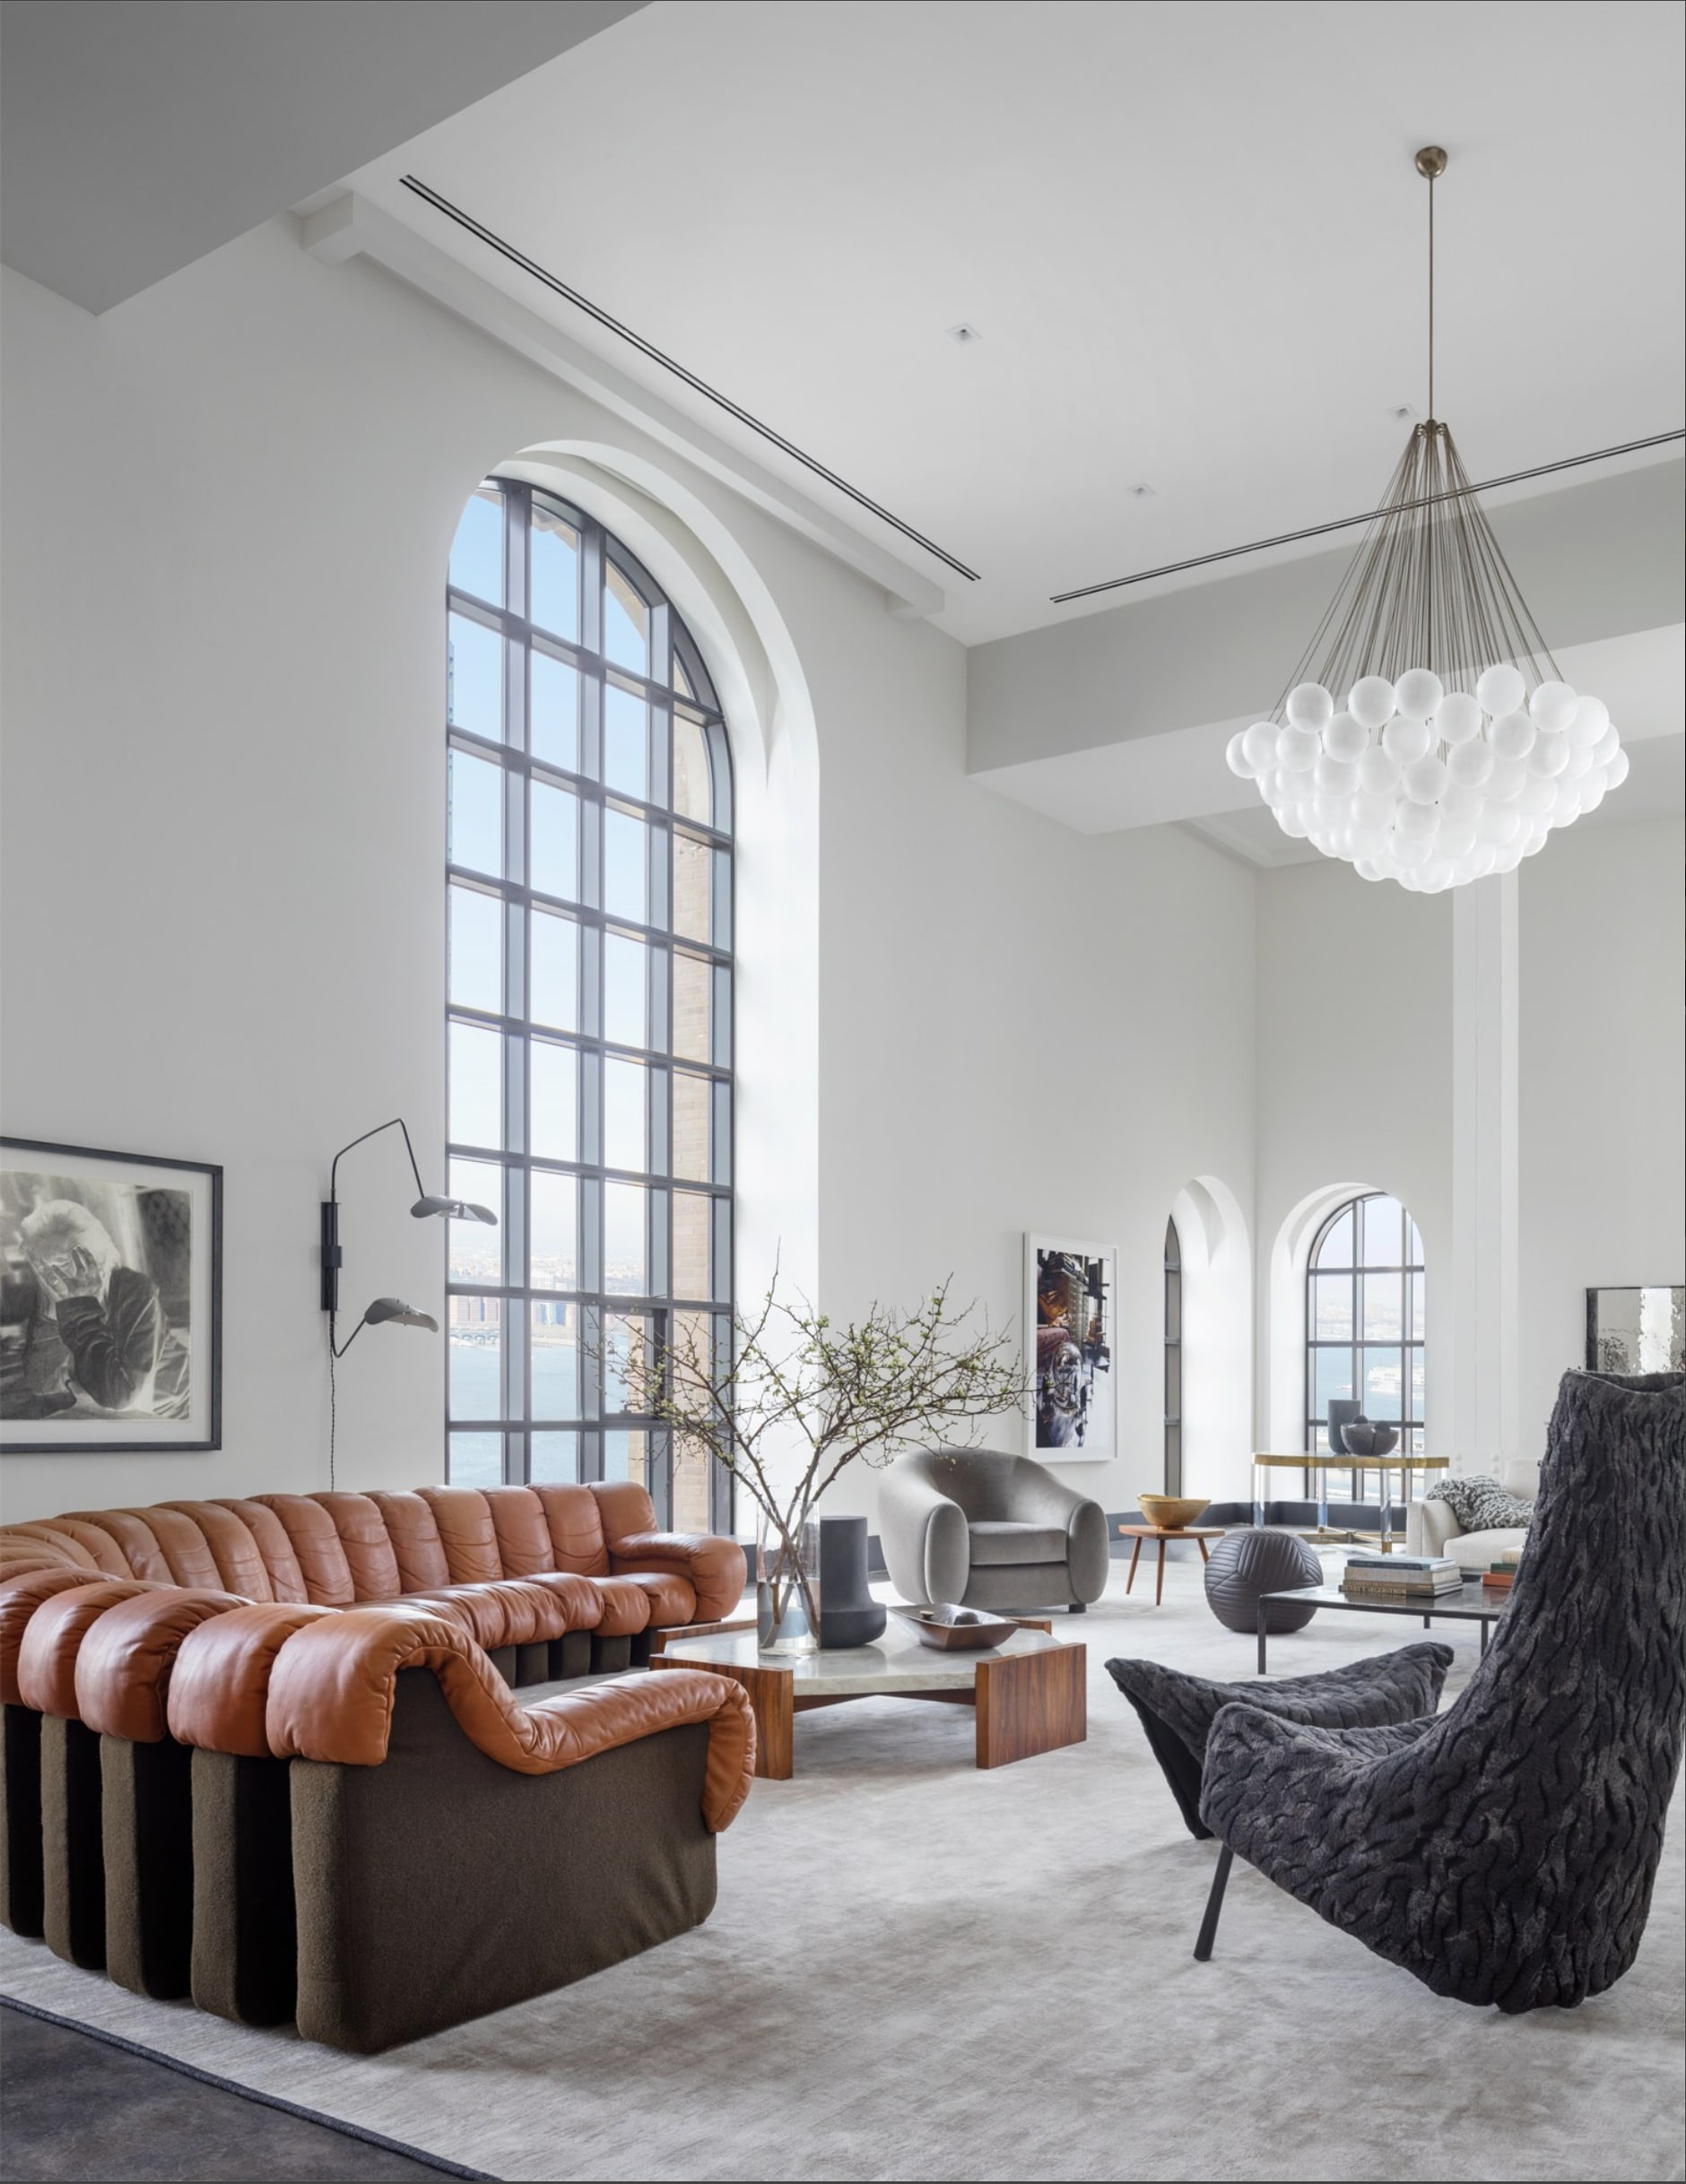 Benches & Ottomans by Moses Nadel seen at One Hundred Barclay Condominiums, New York - Banded Ottoman